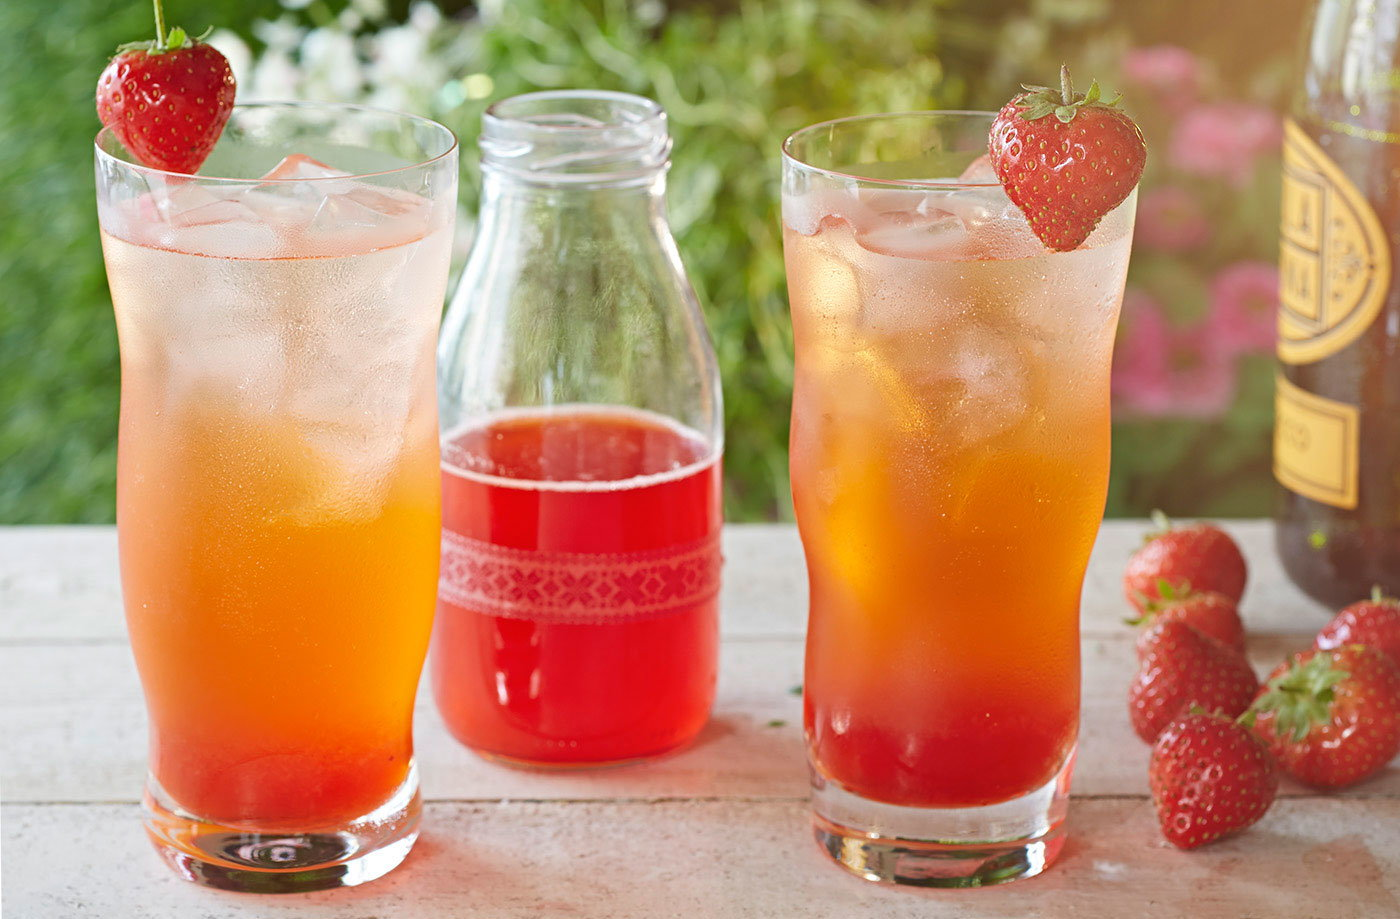 Strawberry and rose fizz recipe